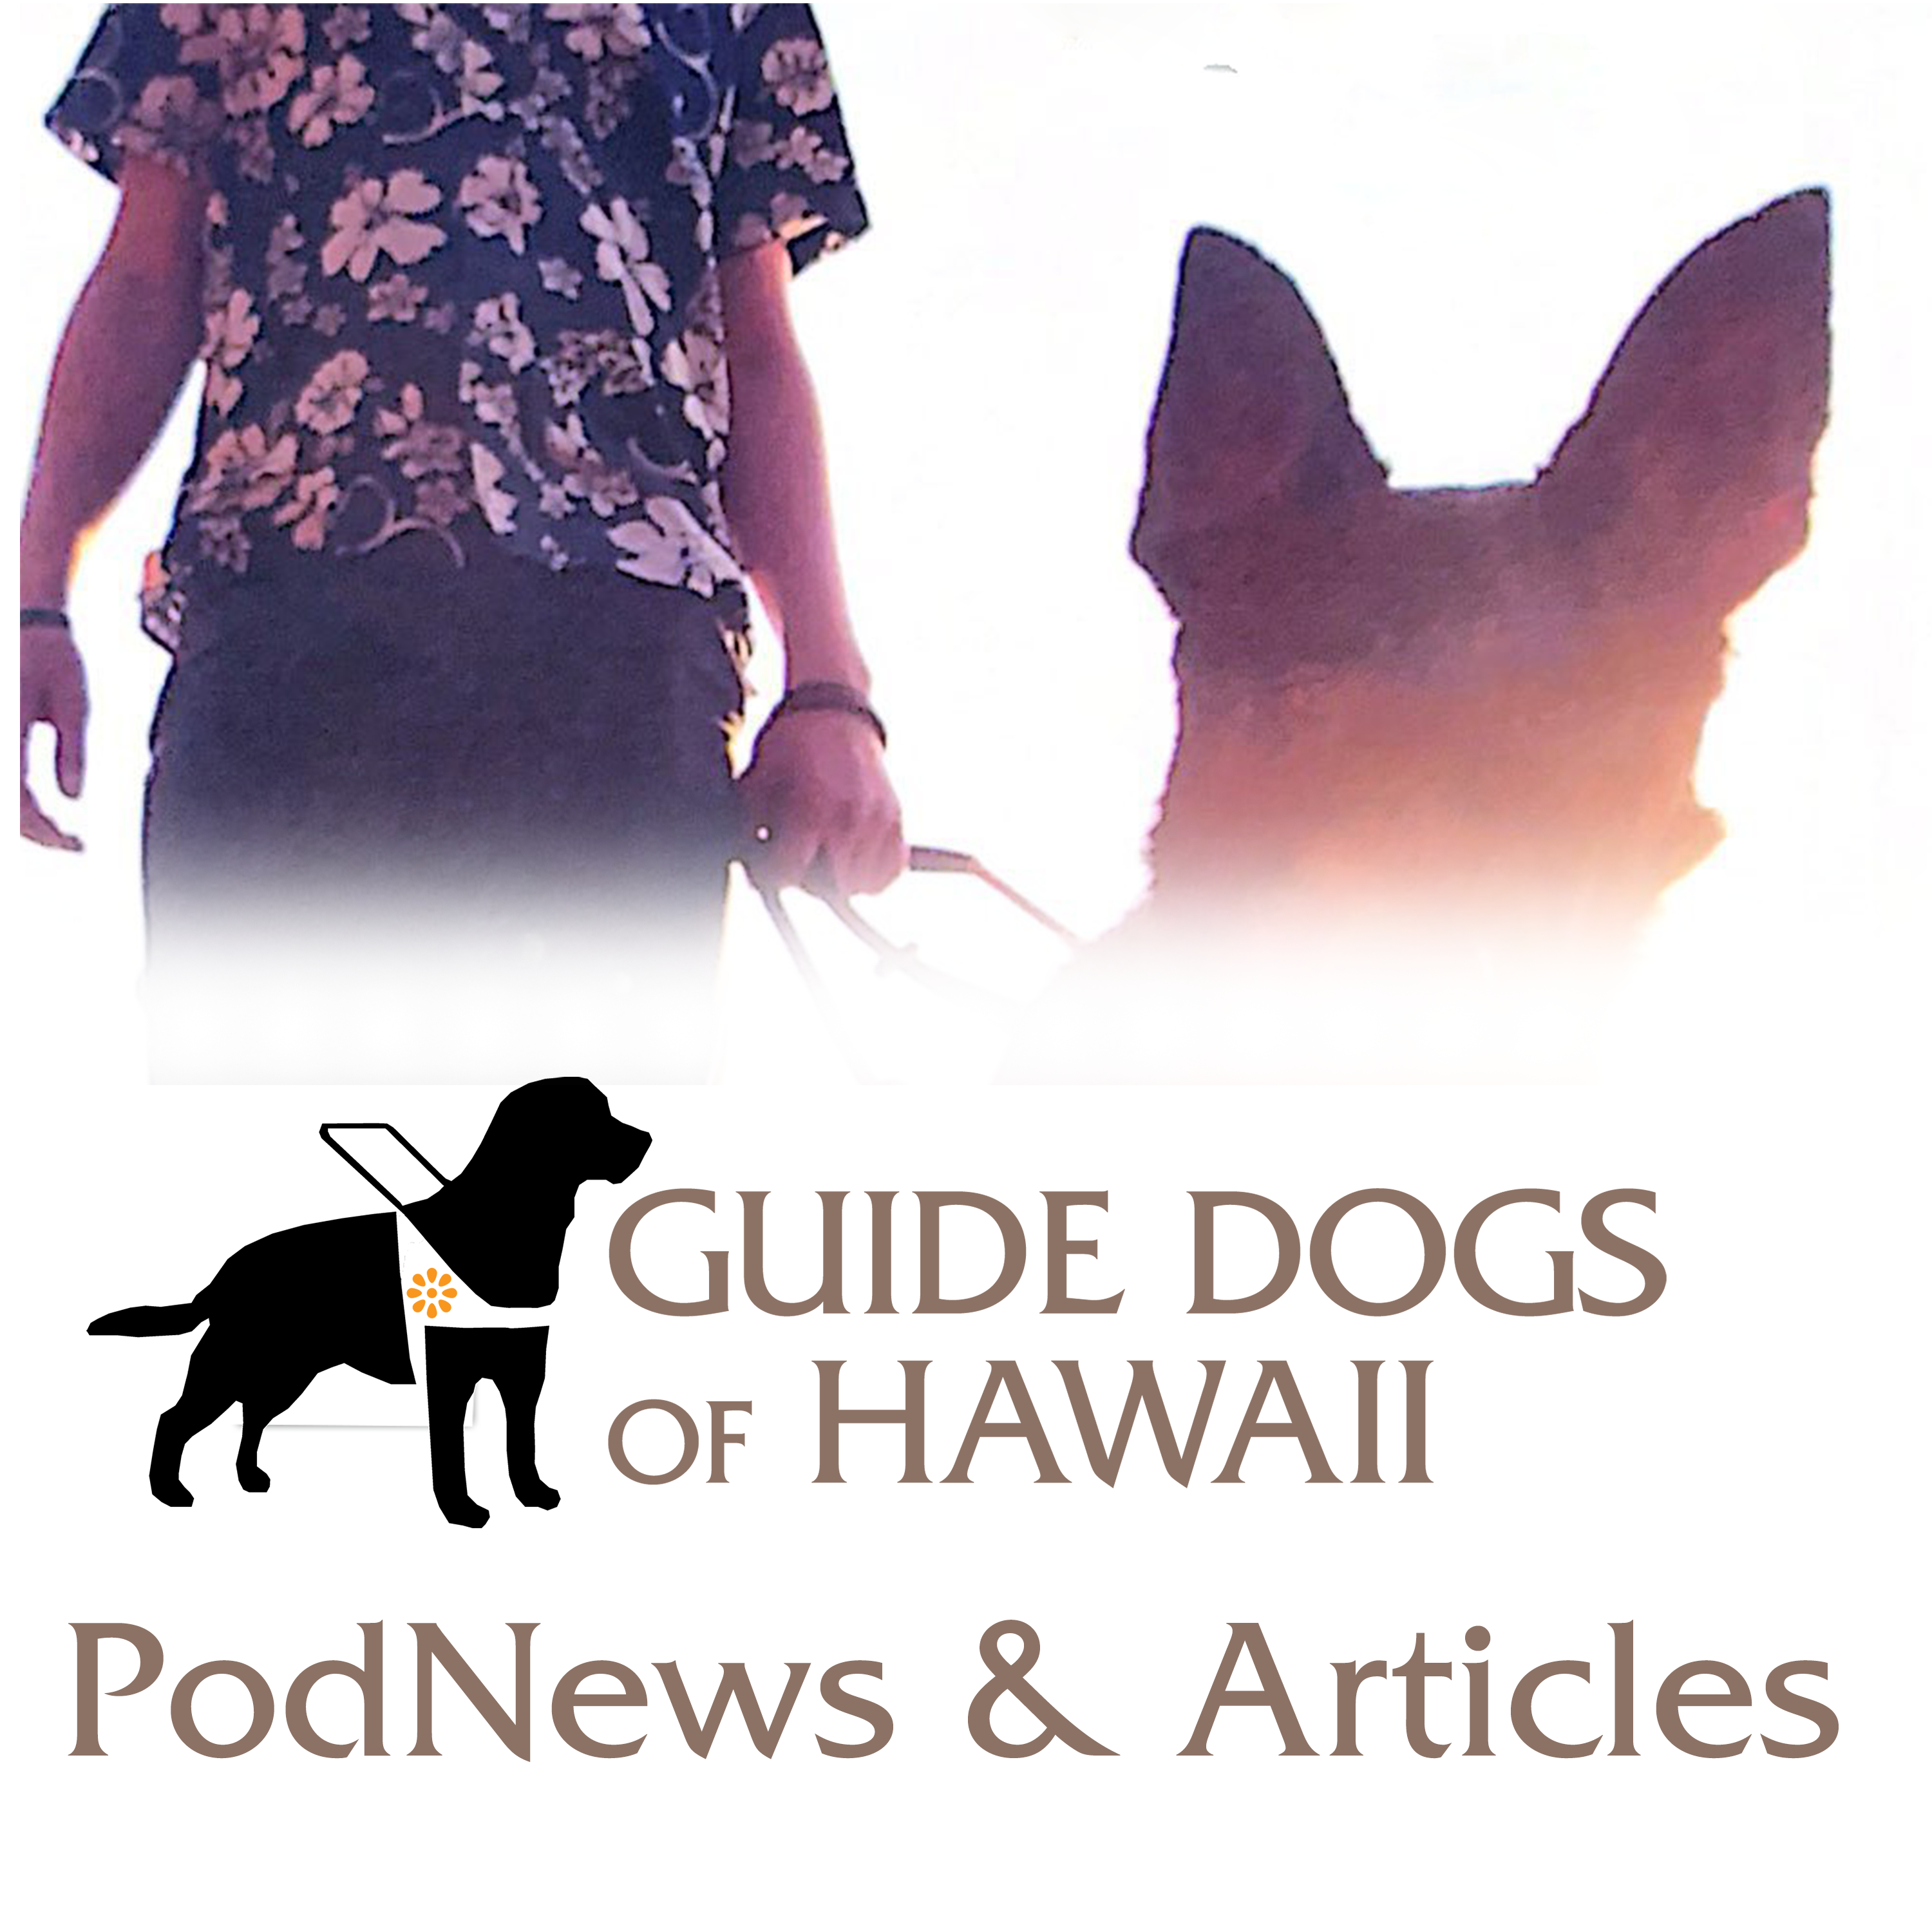 Guide Dogs of Hawaii VoiceNews & Articles